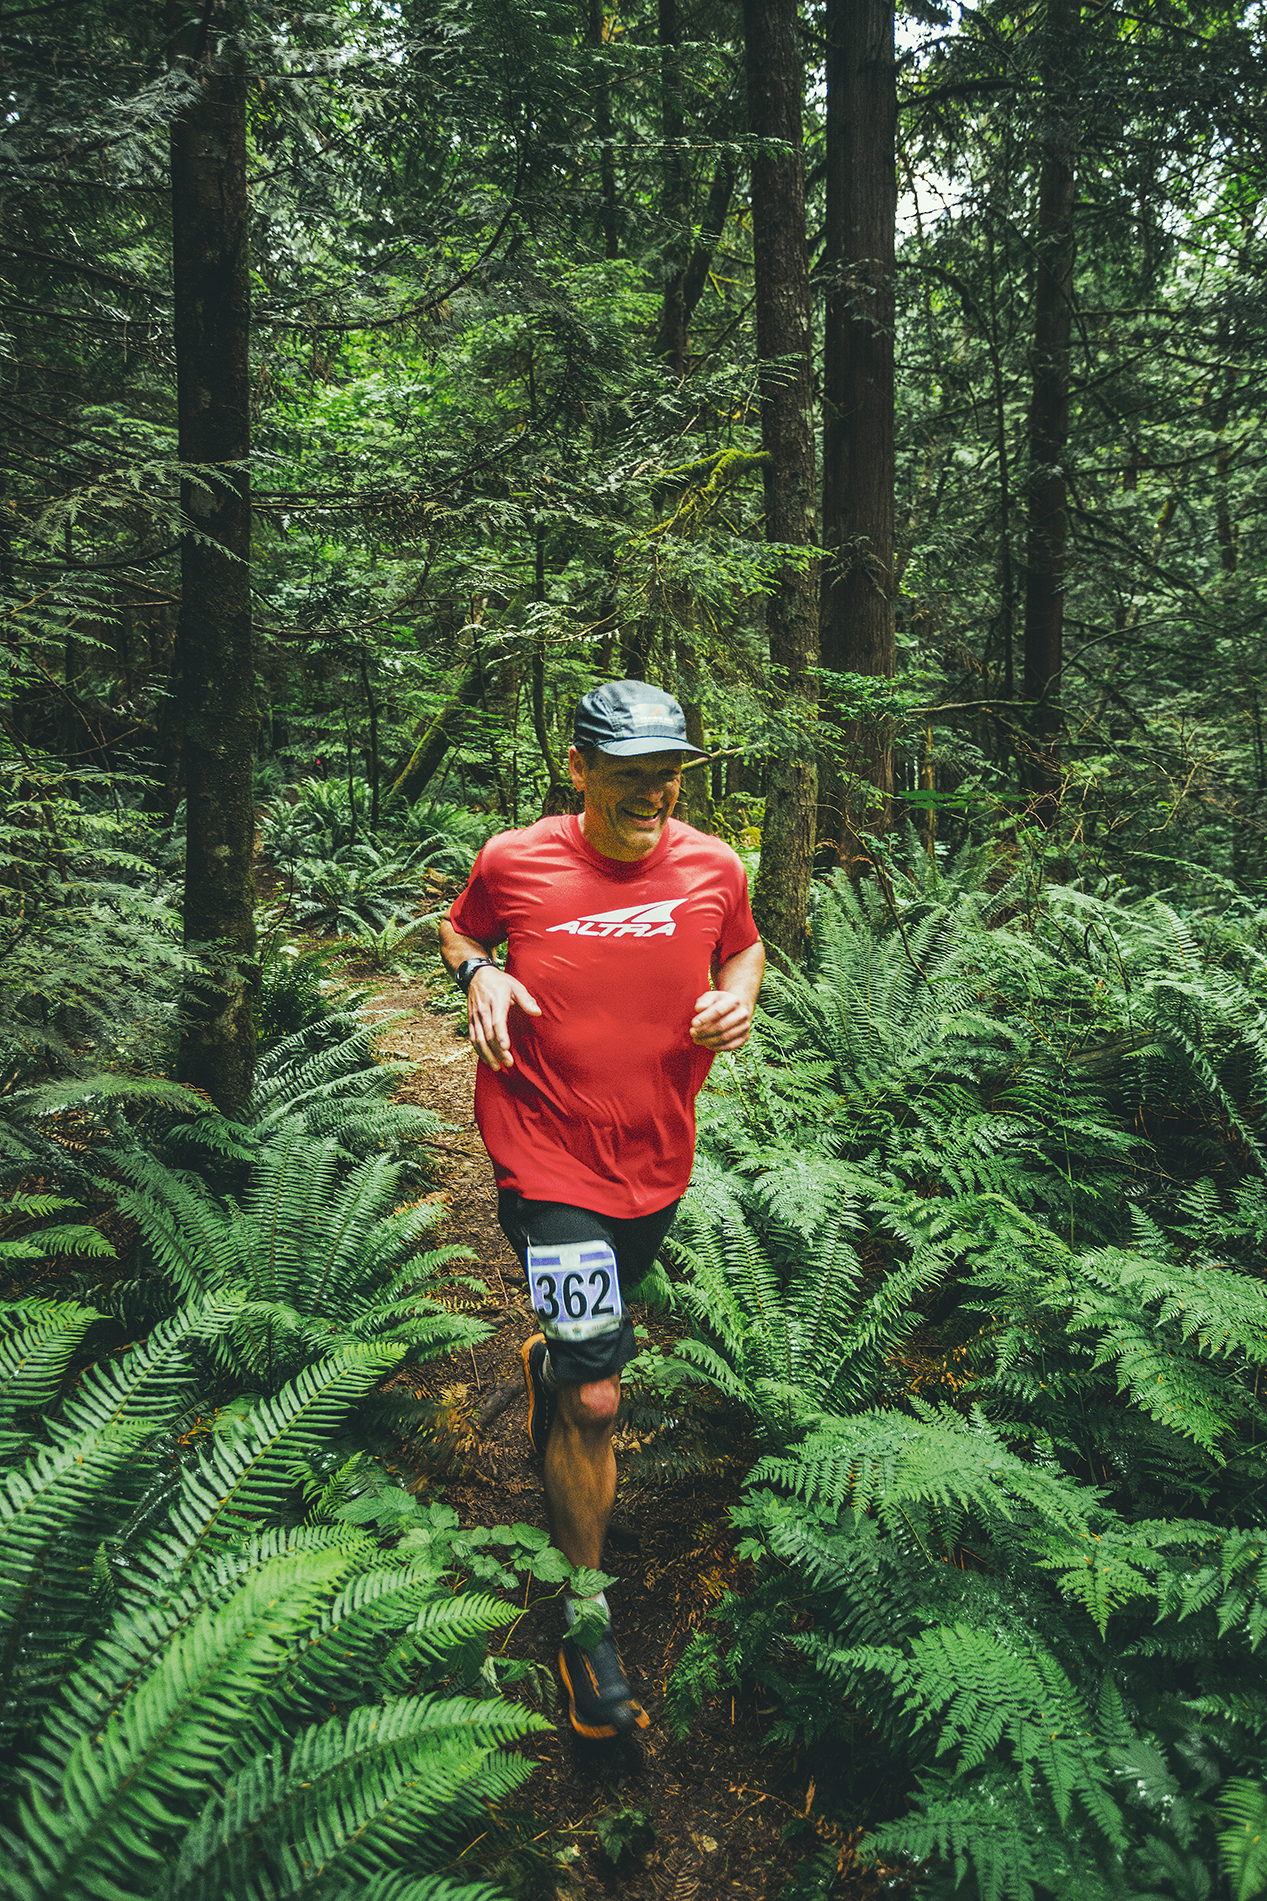 Fraser Valley Trail Races - Bear Mountain - IMG_2986 by Brice Ferre Studio - Vancouver Portrait Adventure and Athlete Photographer.jpg